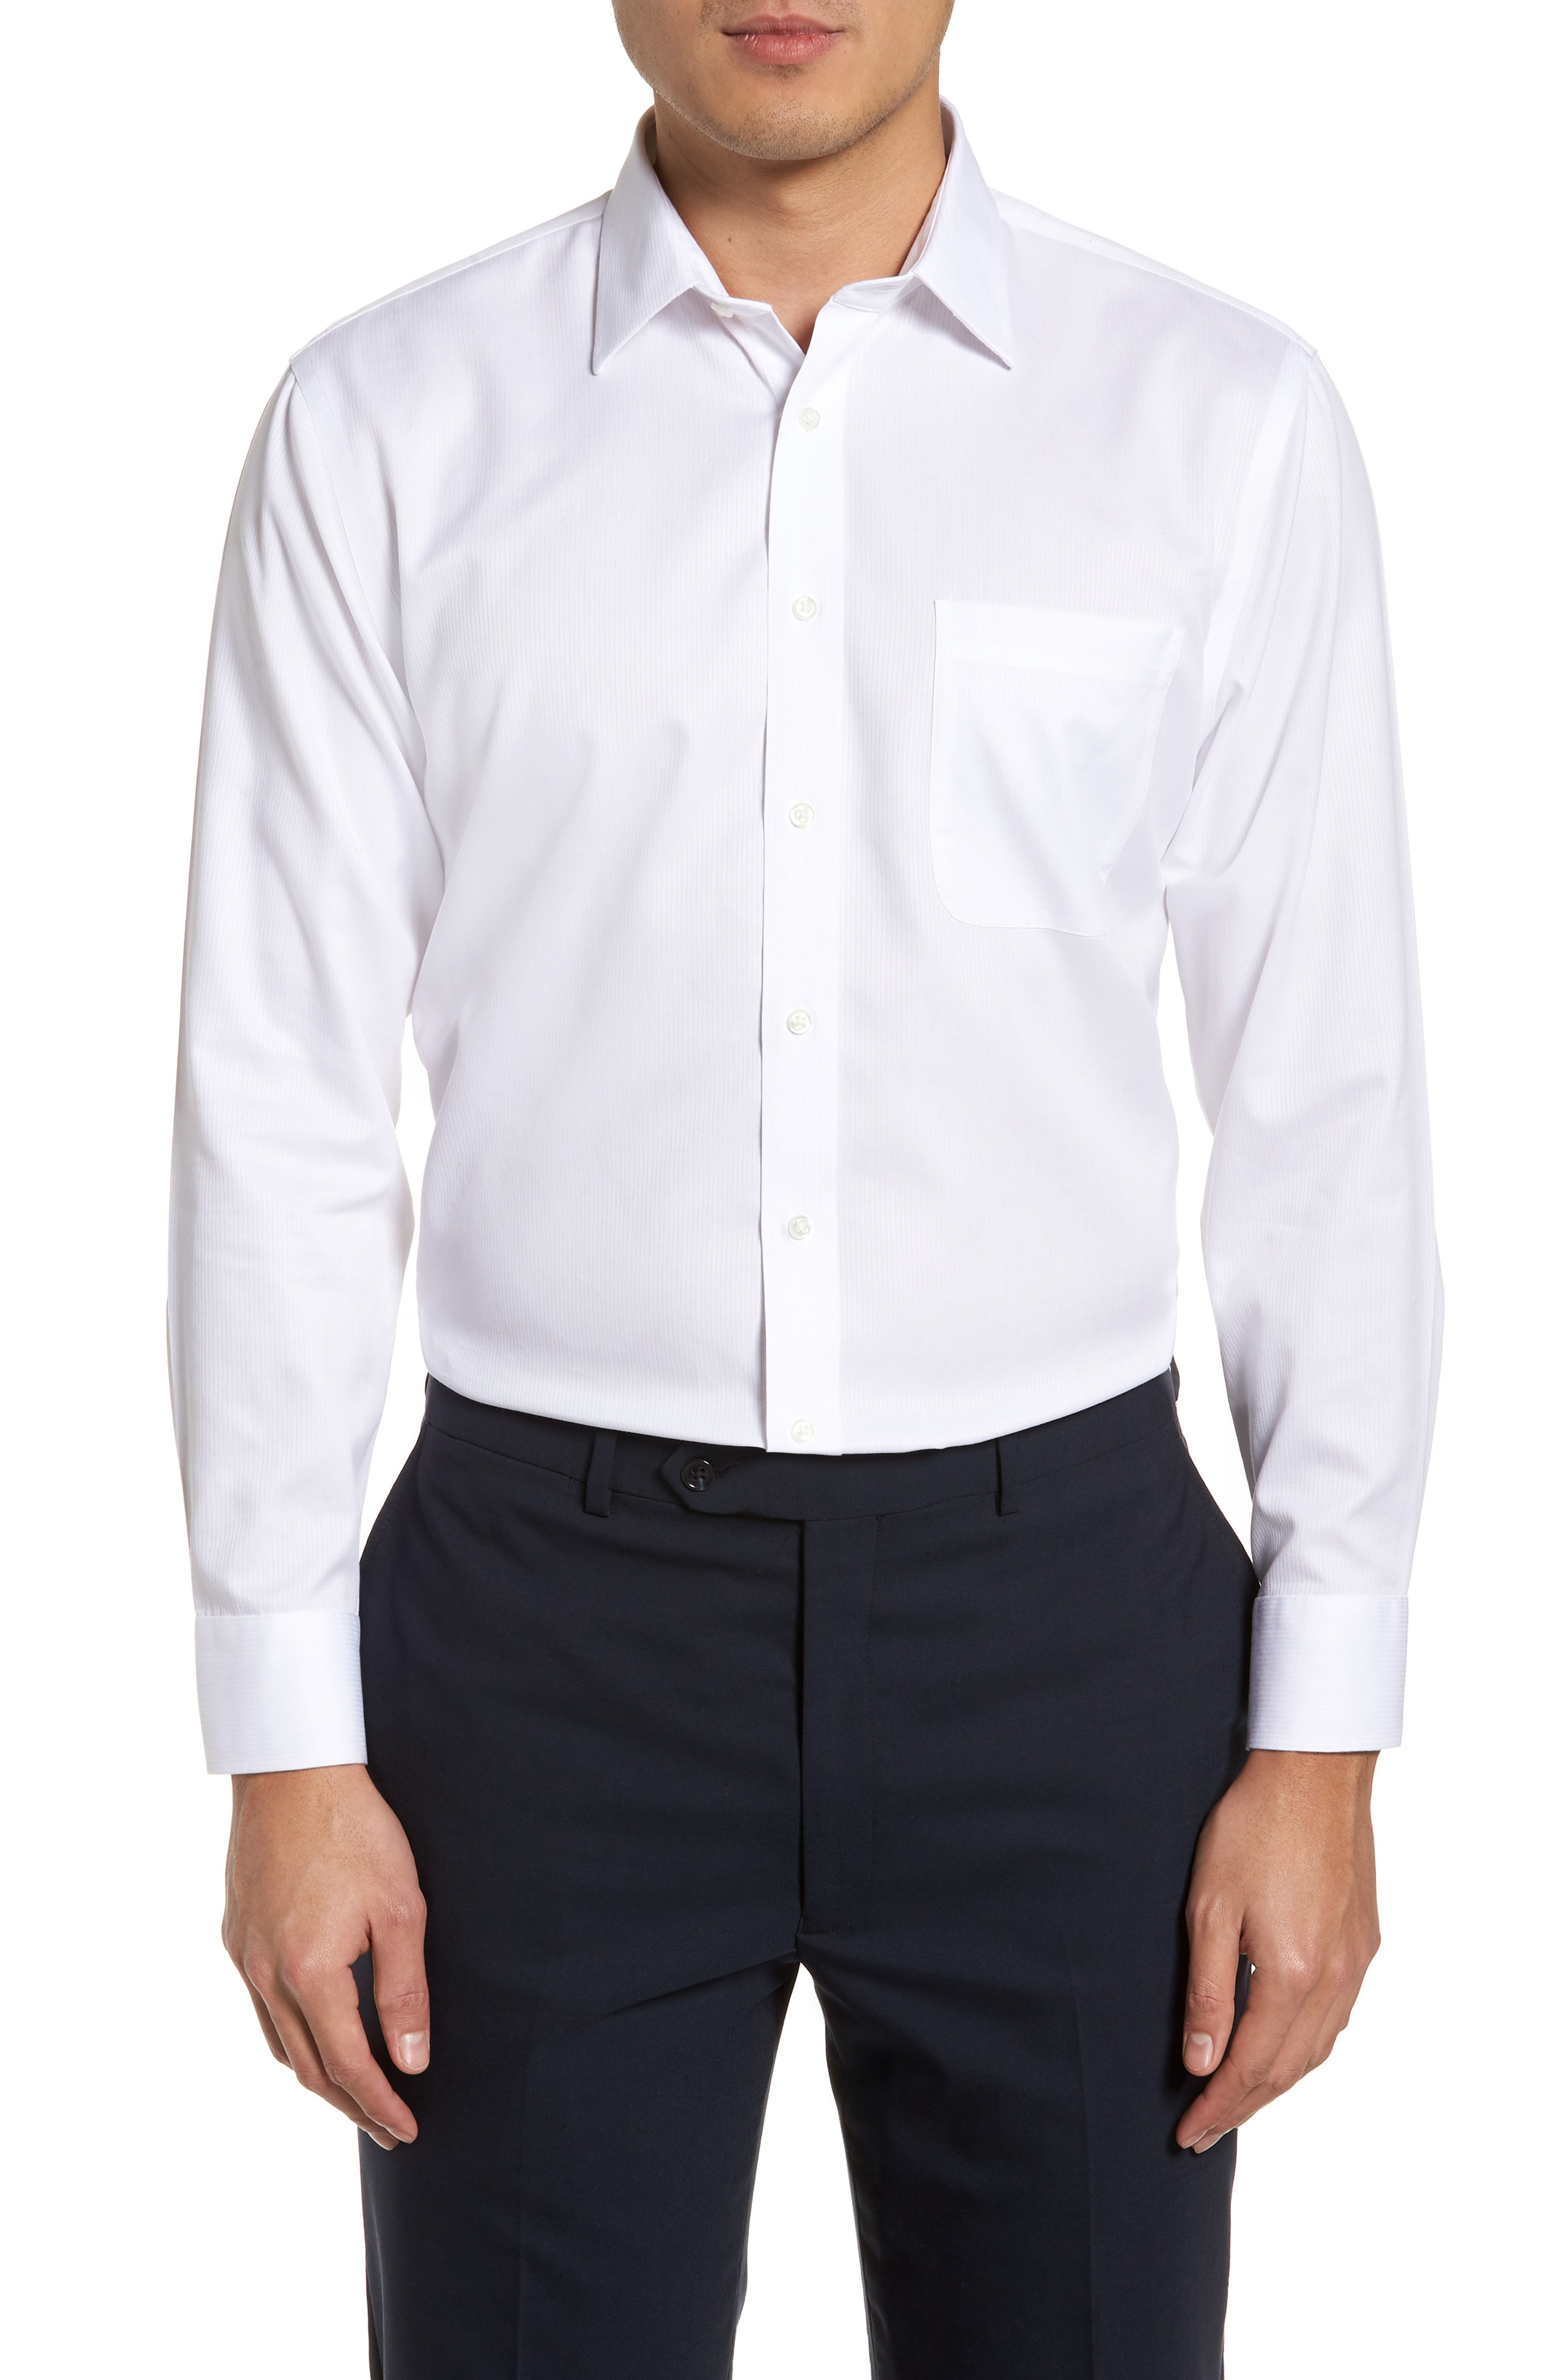 Men's Shirts | Nordstrom